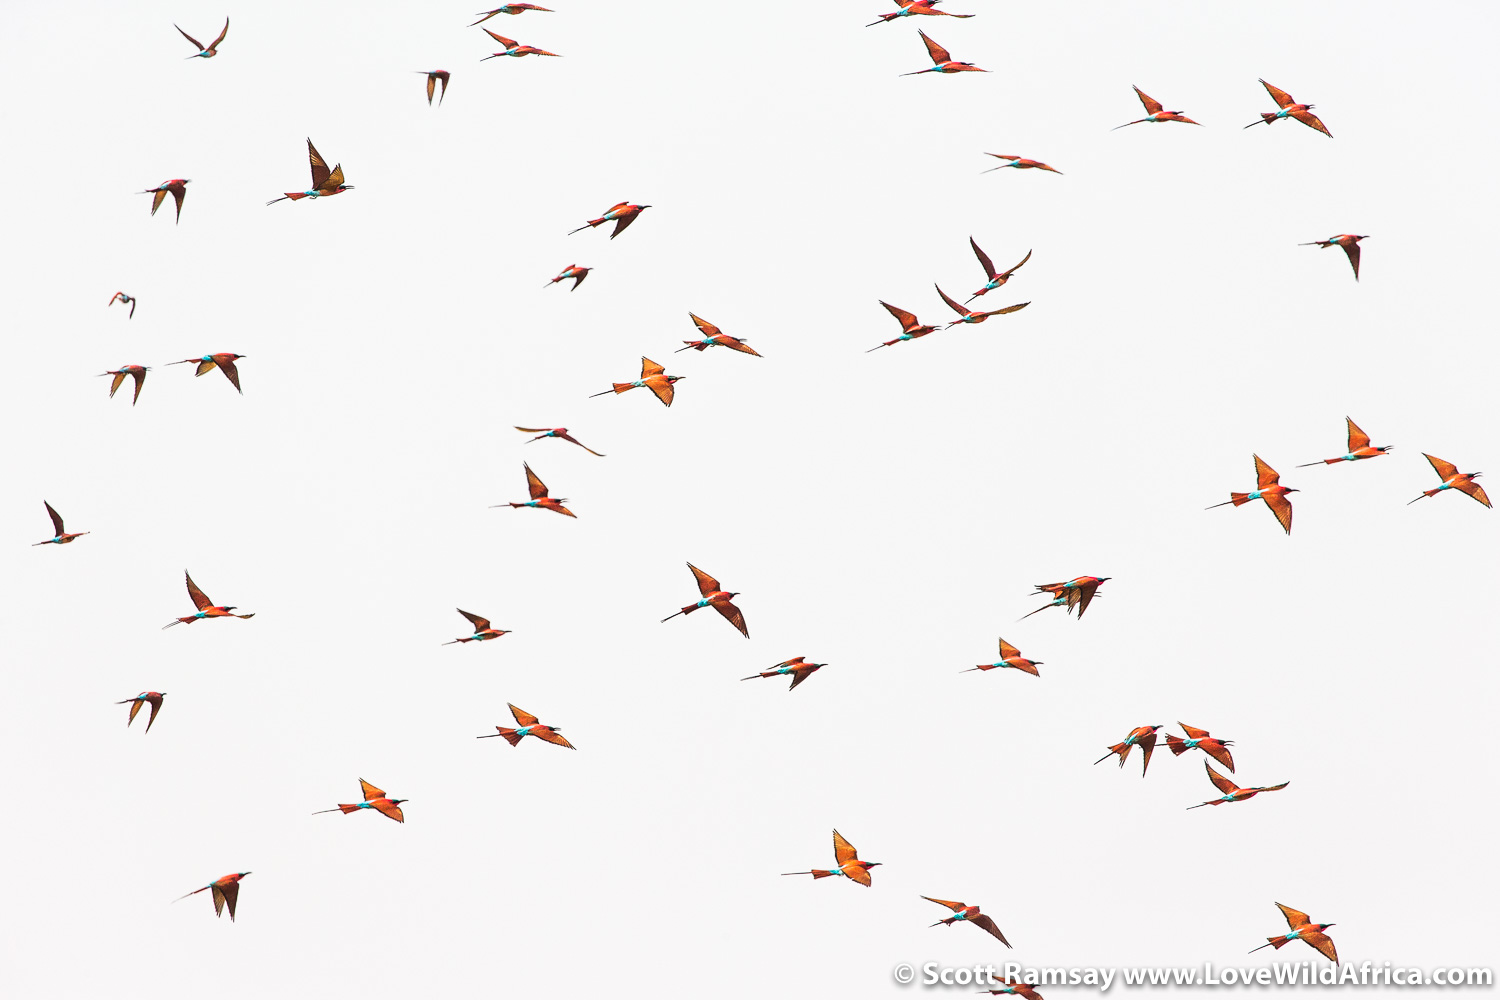 My kind of air traffic. Southern carmine bee-eaters flock in their thousands.